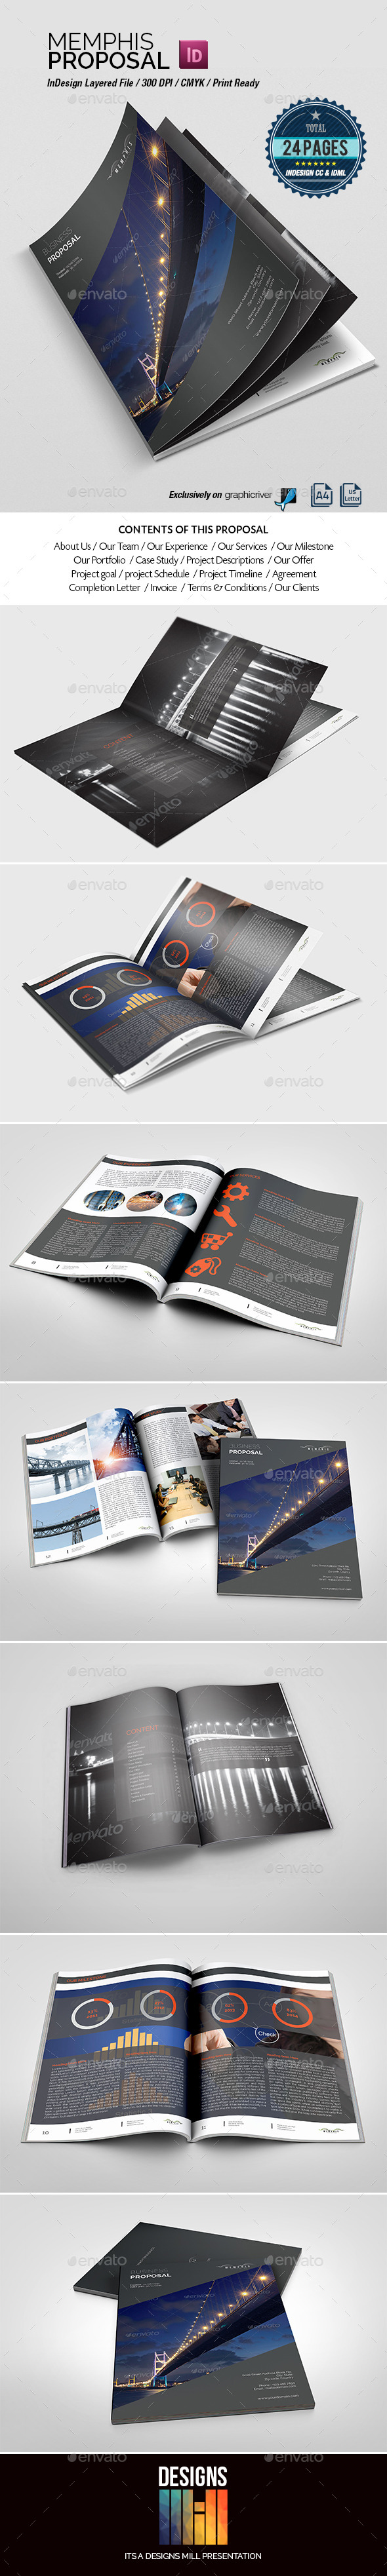 Memphis Multipurpose Proposal - Proposals & Invoices Stationery